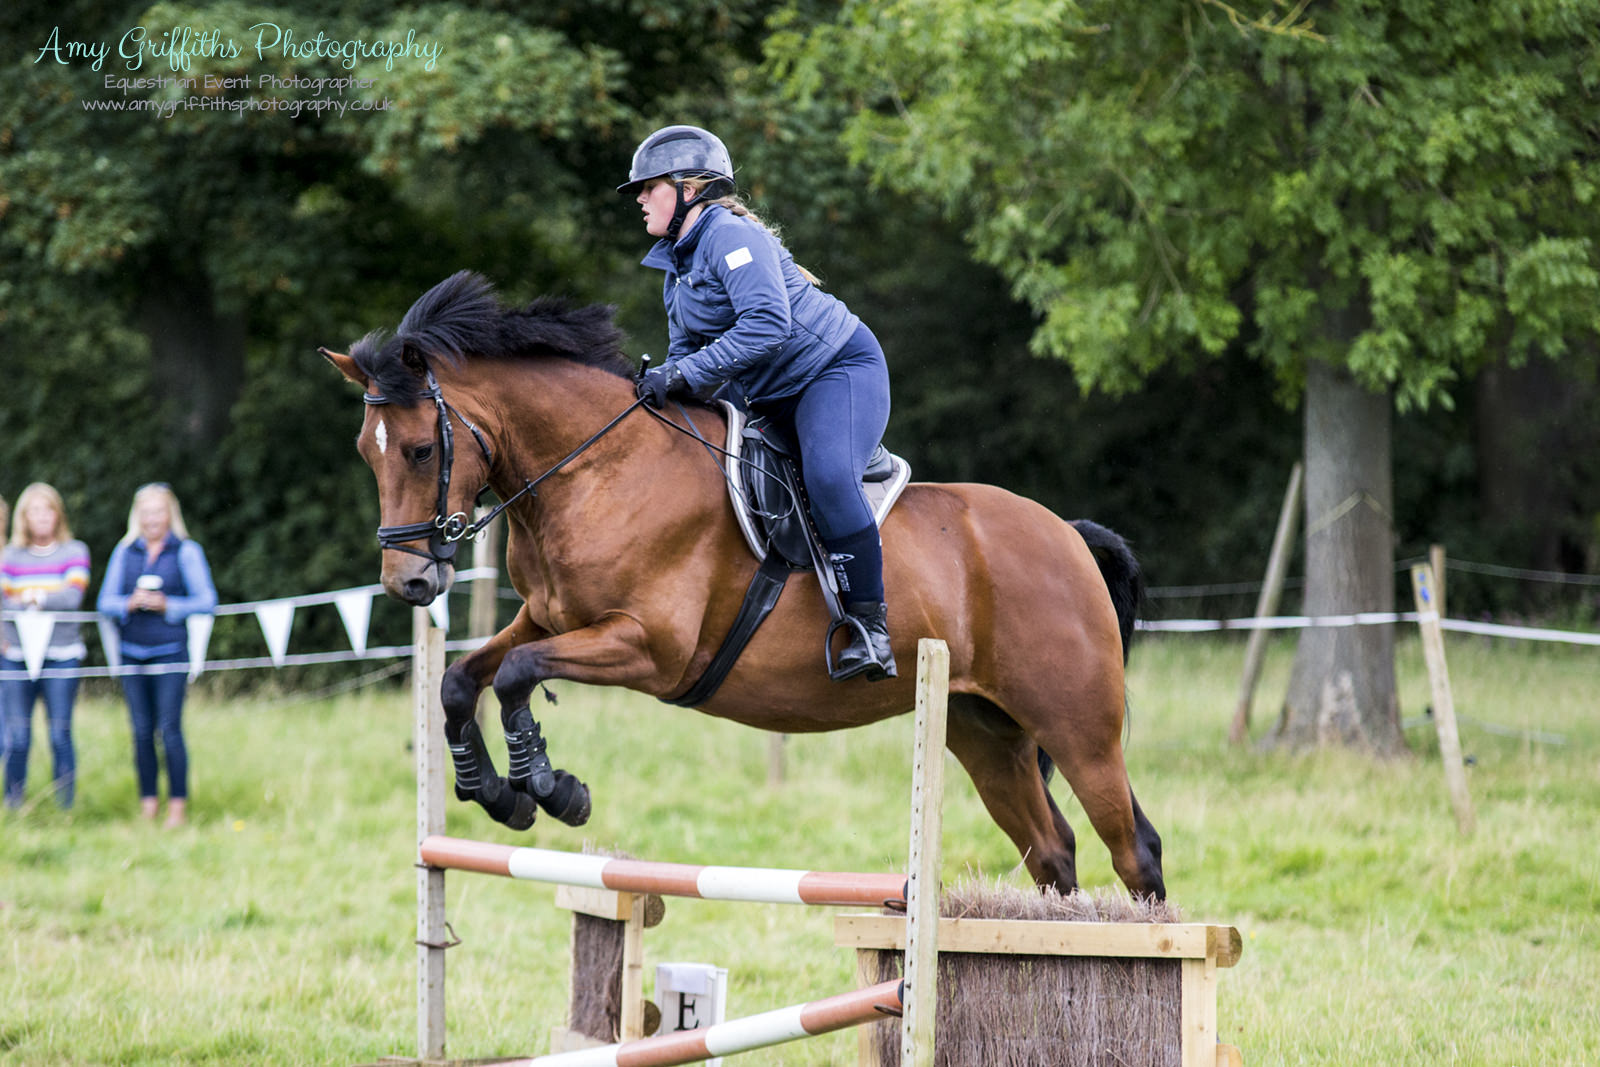 Showjumping at Kildarra Events - Amy Griffiths Event Photography